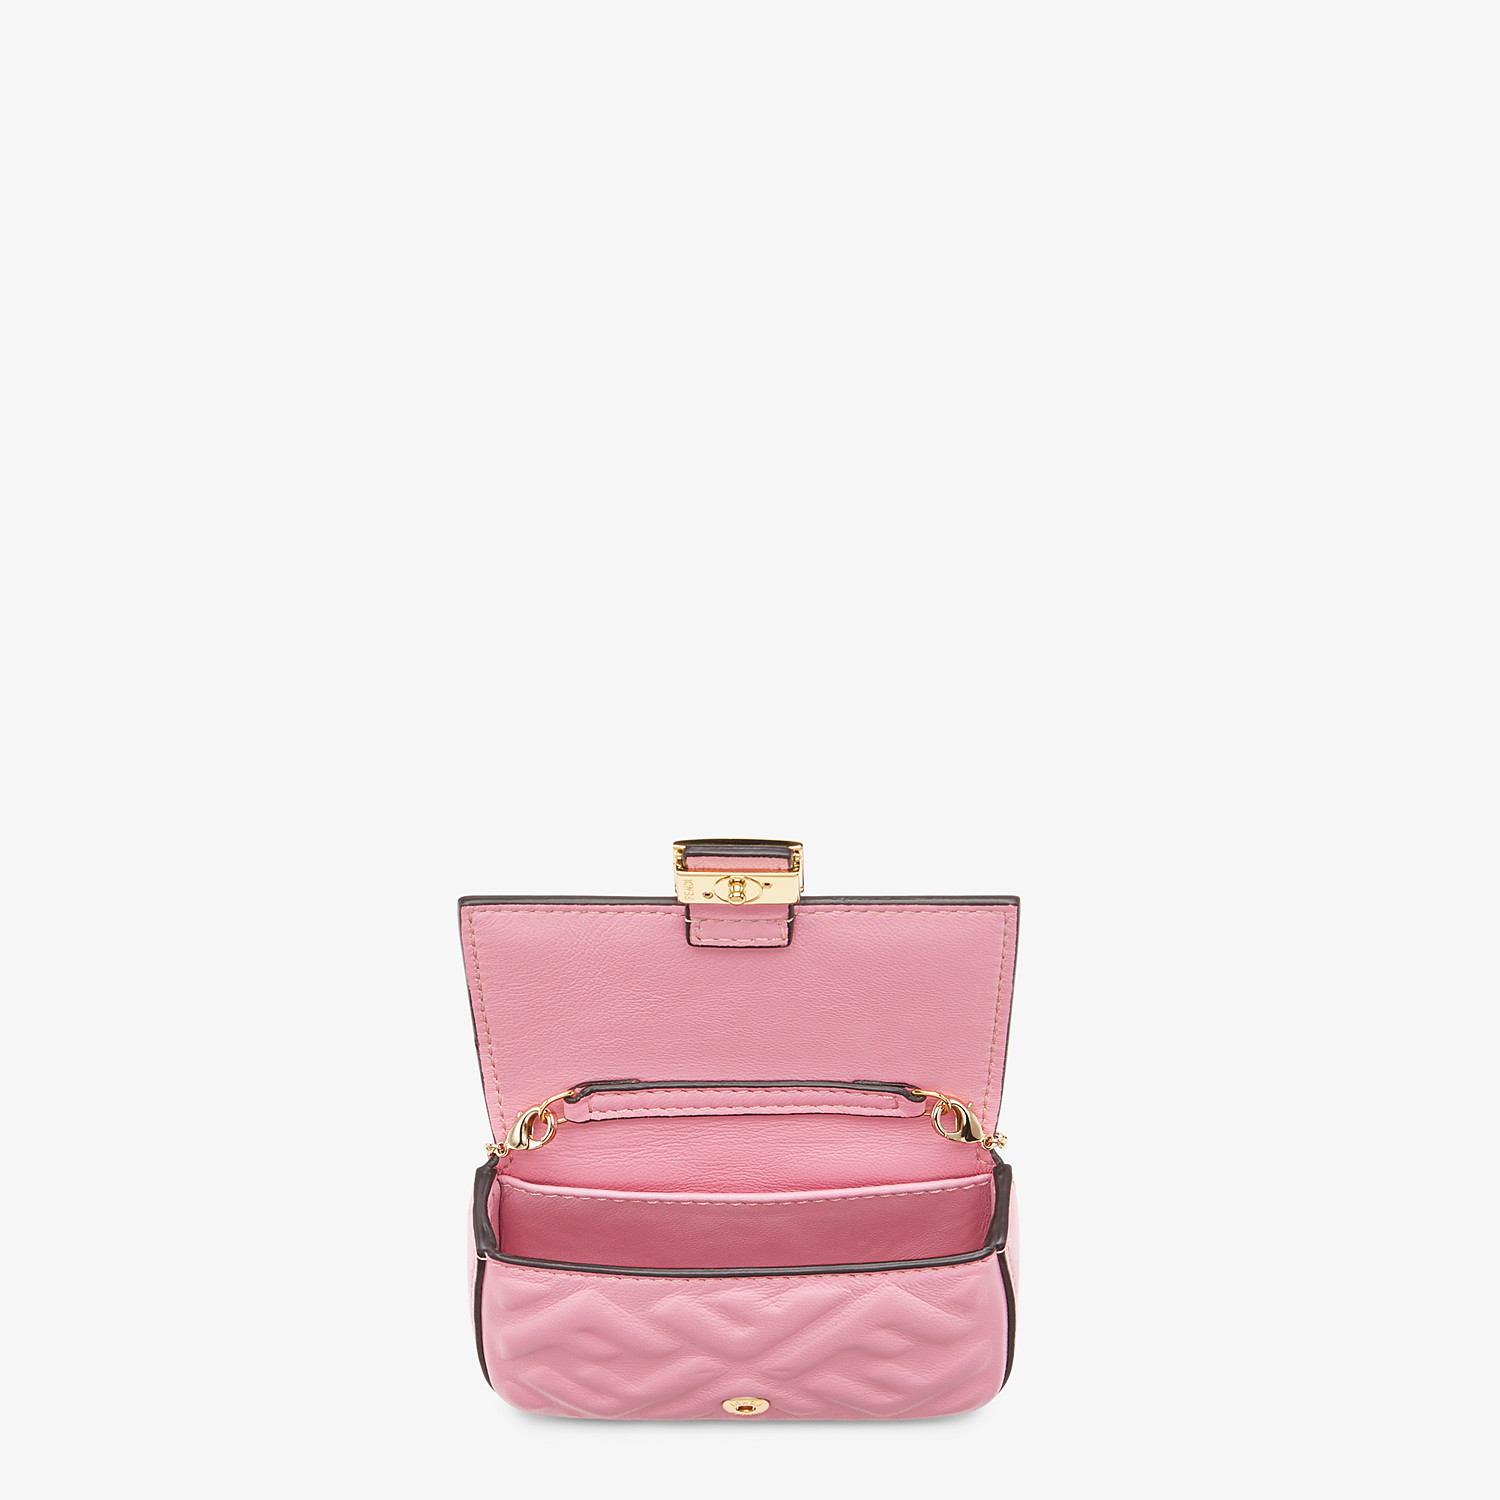 FENDI NANO BAGUETTE CHARM - Charm in pink nappa leather - view 5 detail